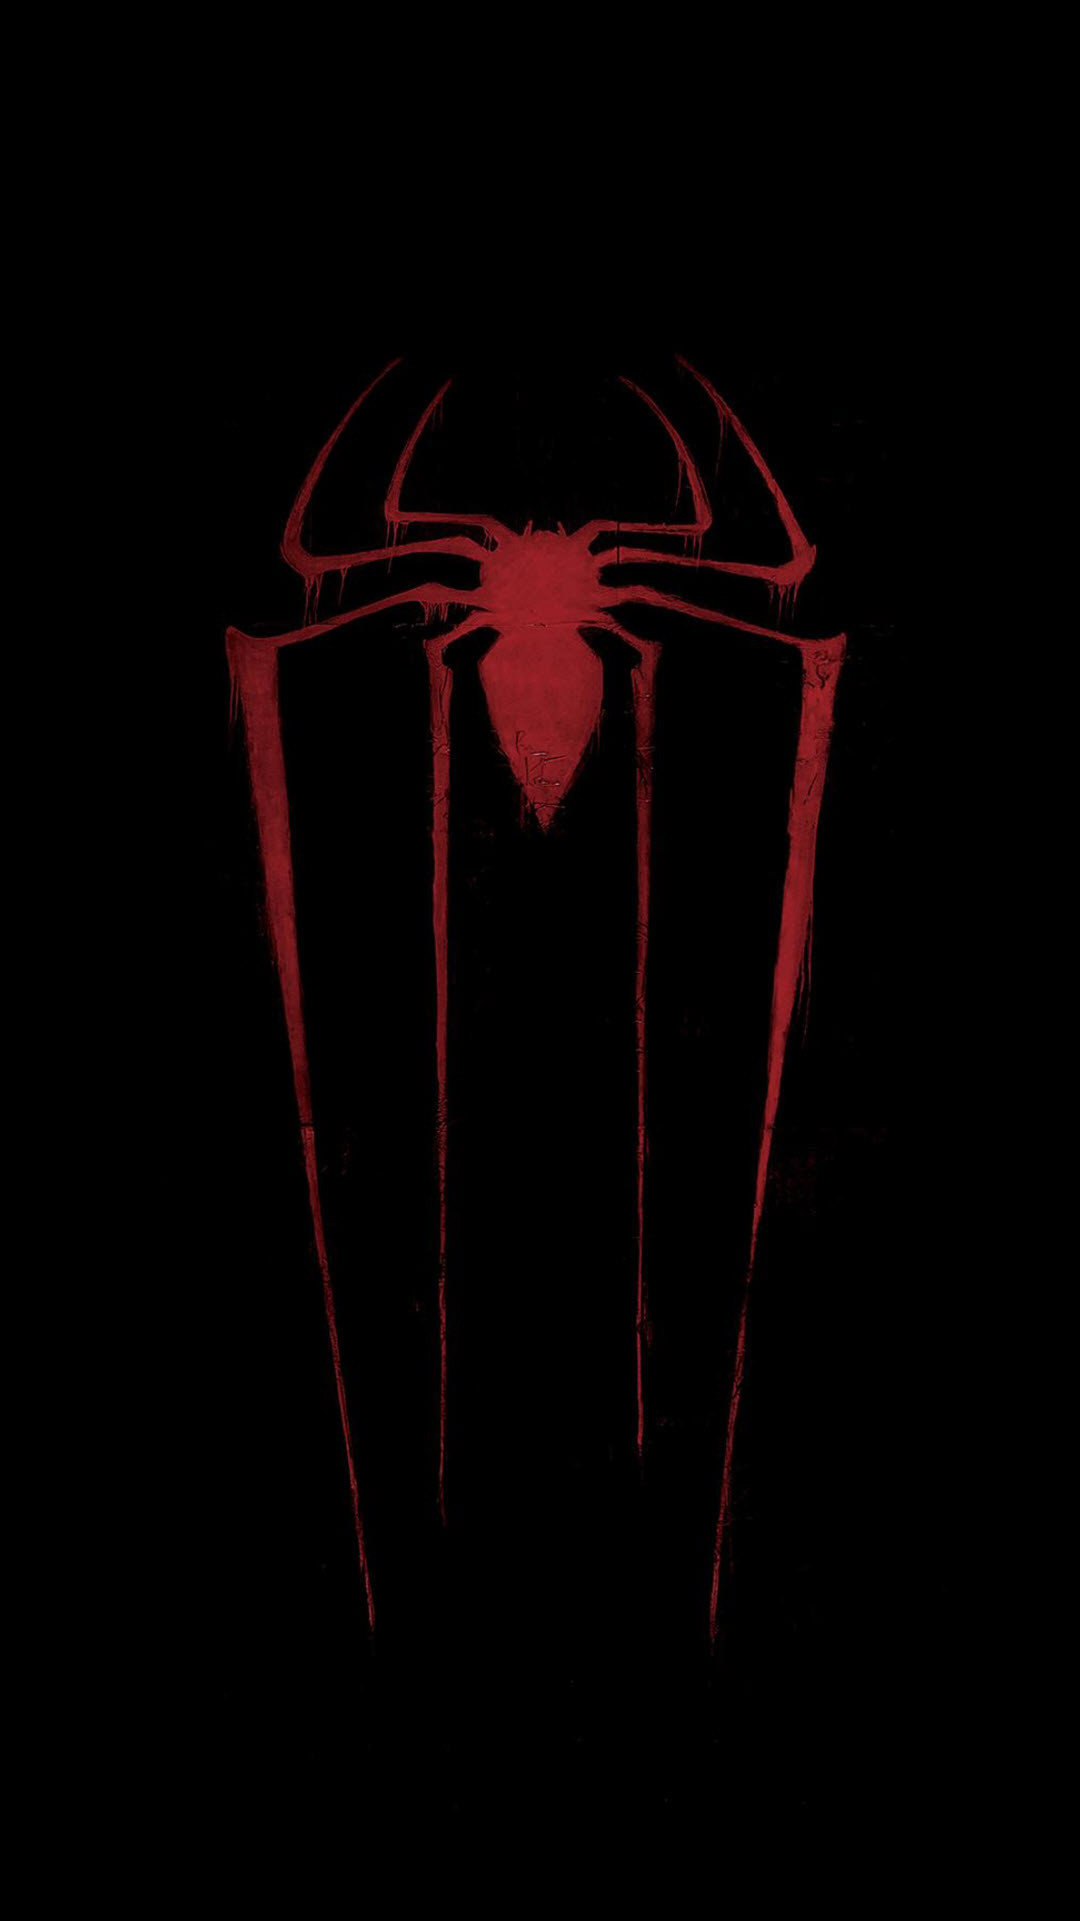 Spiderman wallpaper for iPhone 10